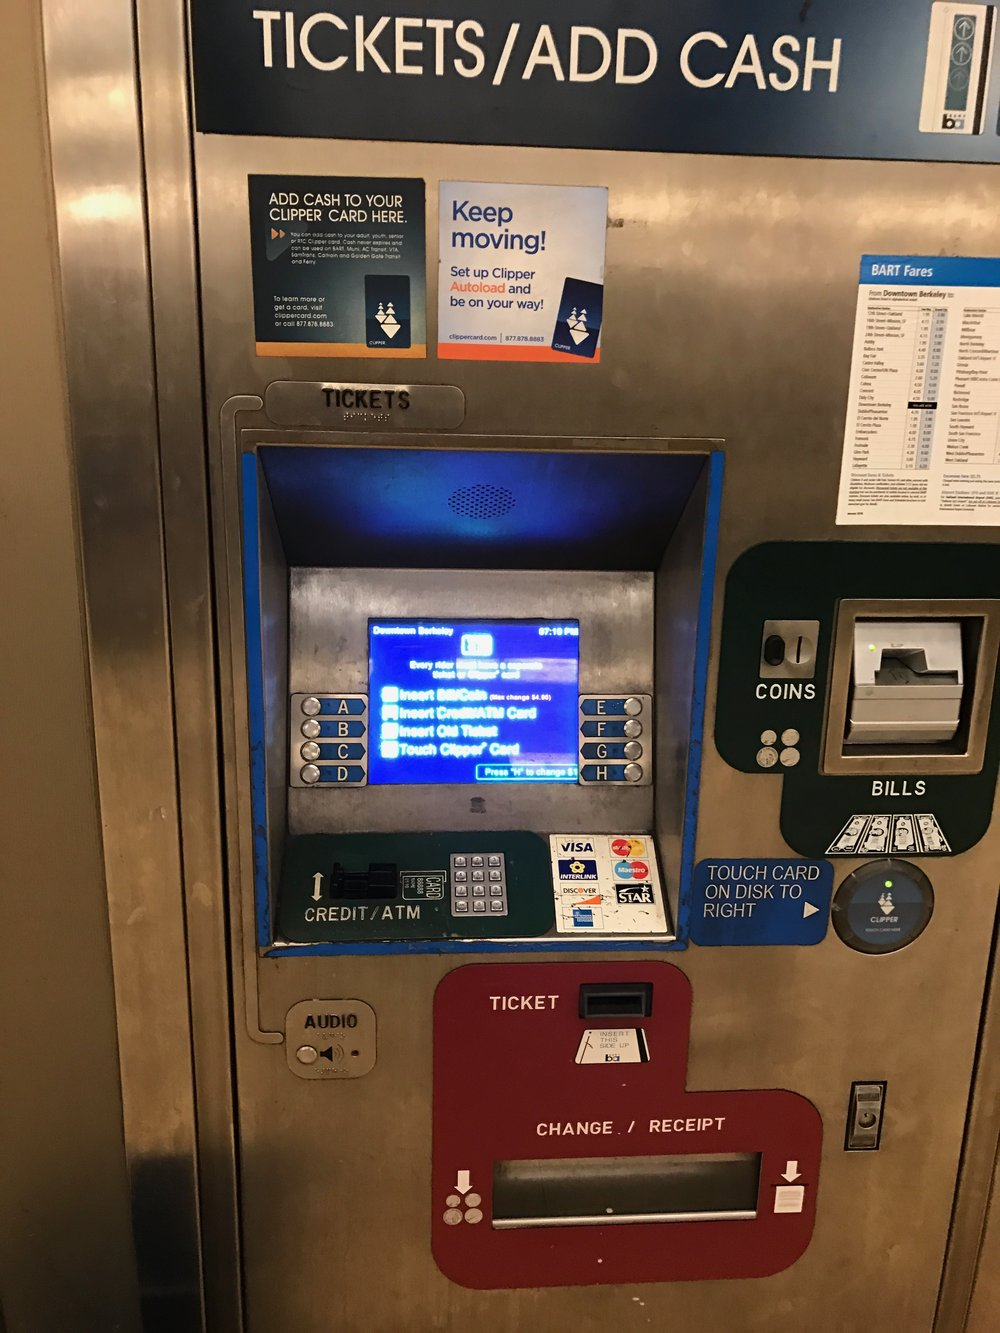 BART Ticket dispensing system